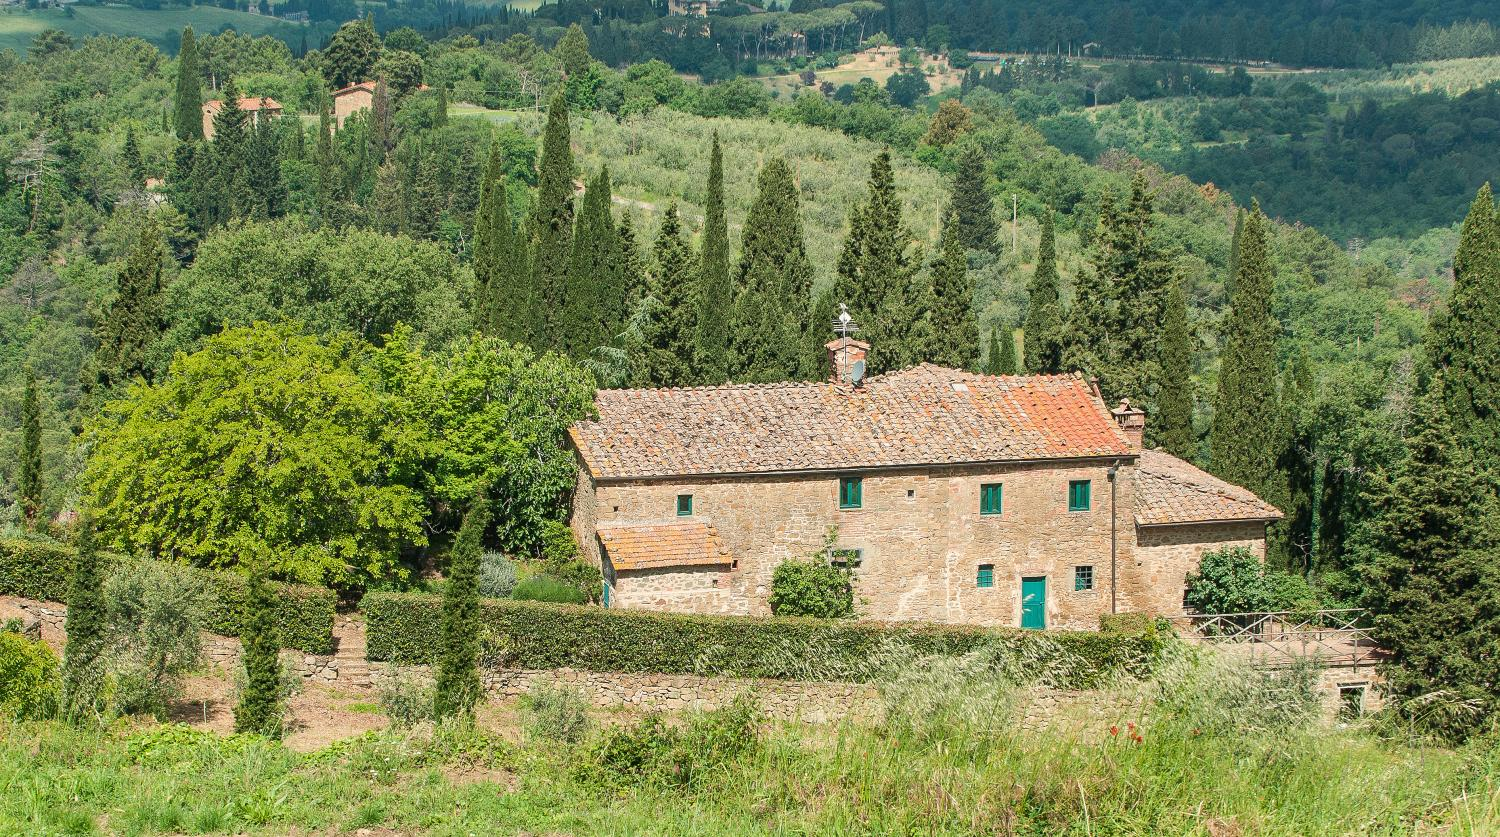 Villa Exterior and Grounds, La Riserva, Greve in Chianti, Tuscany.